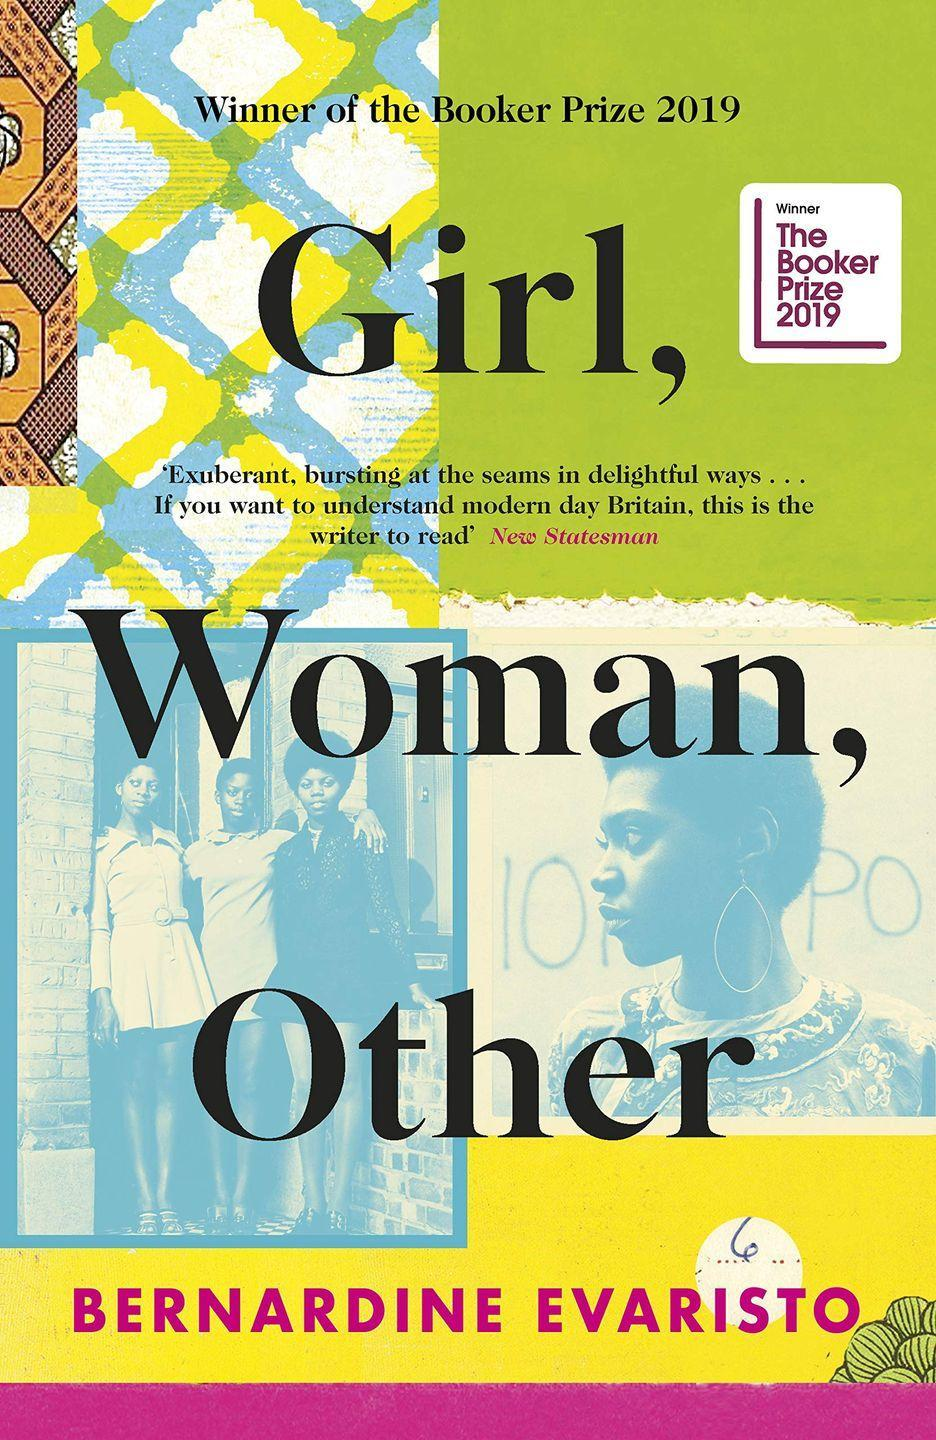 "<p>Joint winner of the 2019 Man Booker Prize, Girl, Woman, Other tells the stories of a group of black British women over the past one hundred years living in Britain, from Newcastle to Cornwall.<br></p><p><a class=""link rapid-noclick-resp"" href=""https://www.amazon.co.uk/Girl-Woman-Other-Bernardine-Evaristo/dp/0241364906?tag=hearstuk-yahoo-21&ascsubtag=%5Bartid%7C1921.g.32141605%5Bsrc%7Cyahoo-uk"" rel=""nofollow noopener"" target=""_blank"" data-ylk=""slk:SHOP NOW"">SHOP NOW</a></p>"